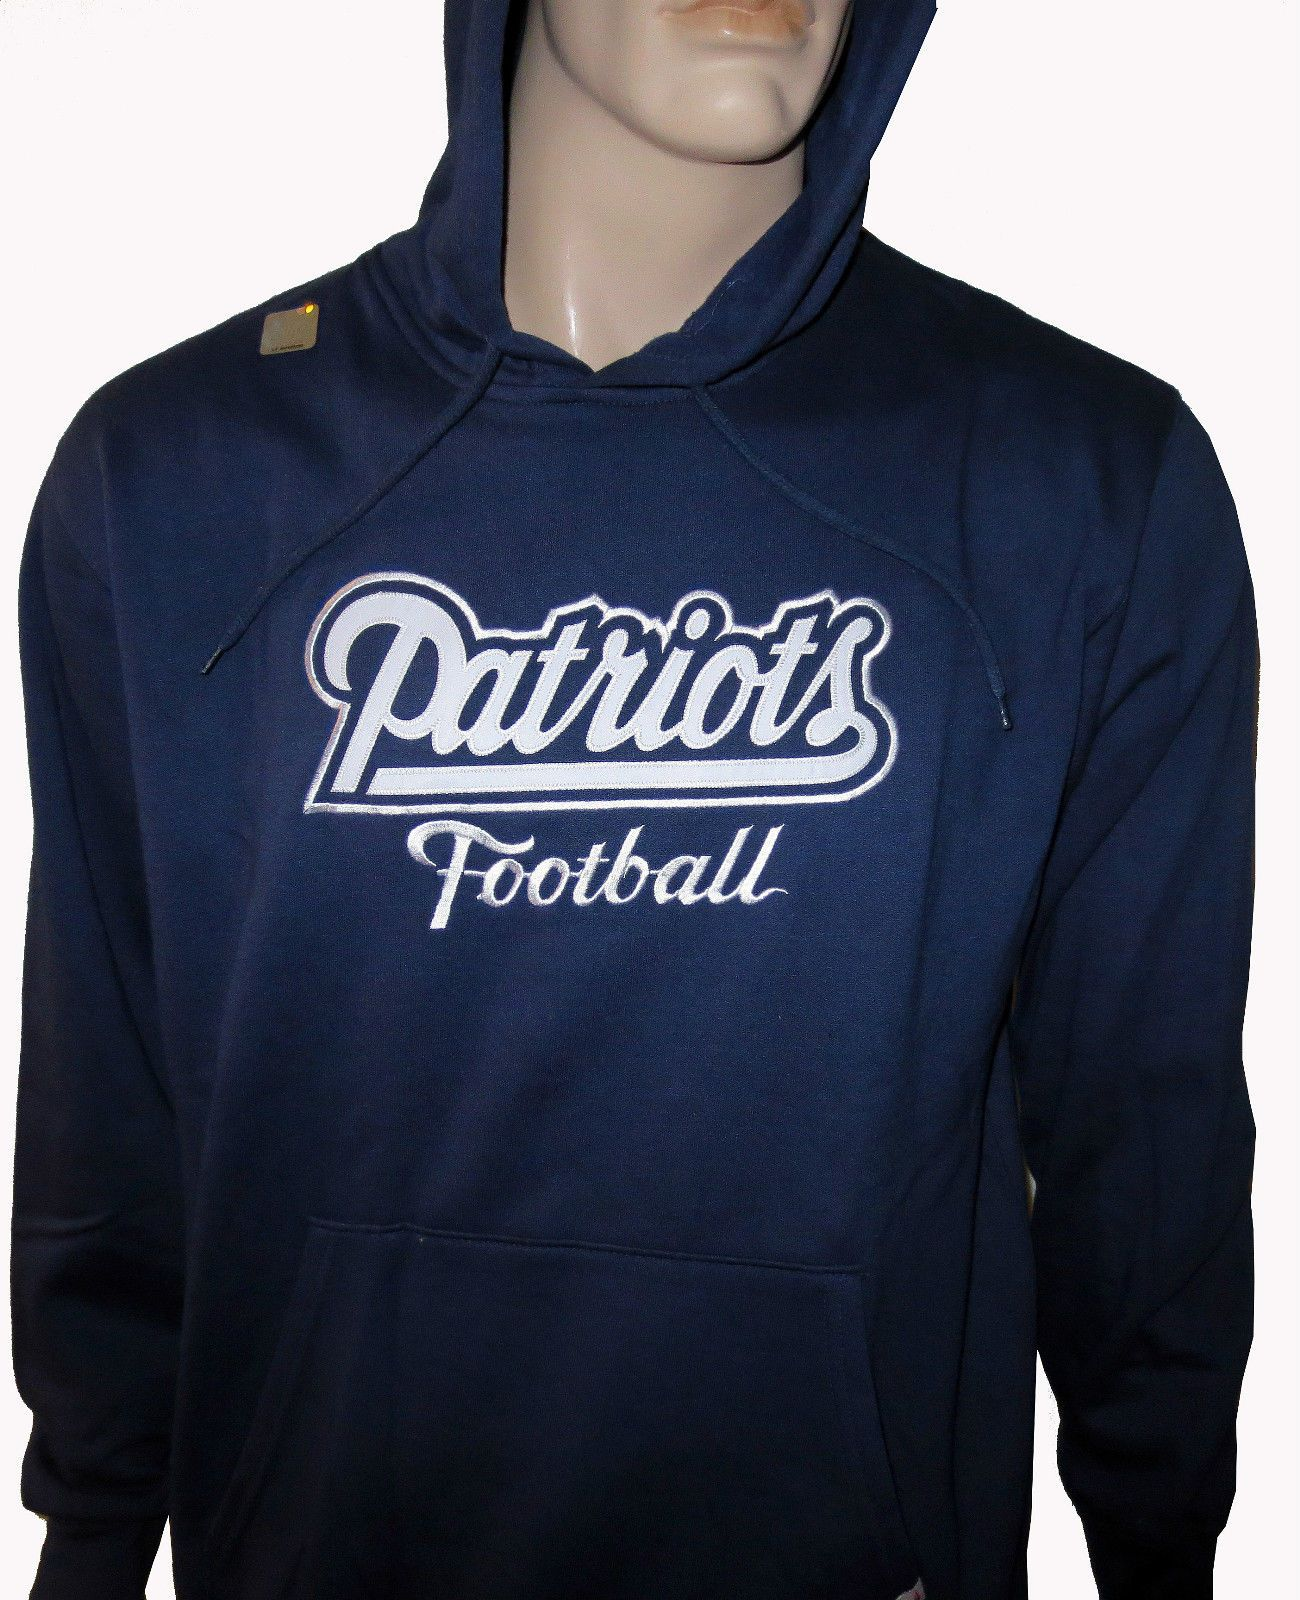 uk availability a0e09 dc44d Details about NWT NFL Team Apparel New England Patriots ...